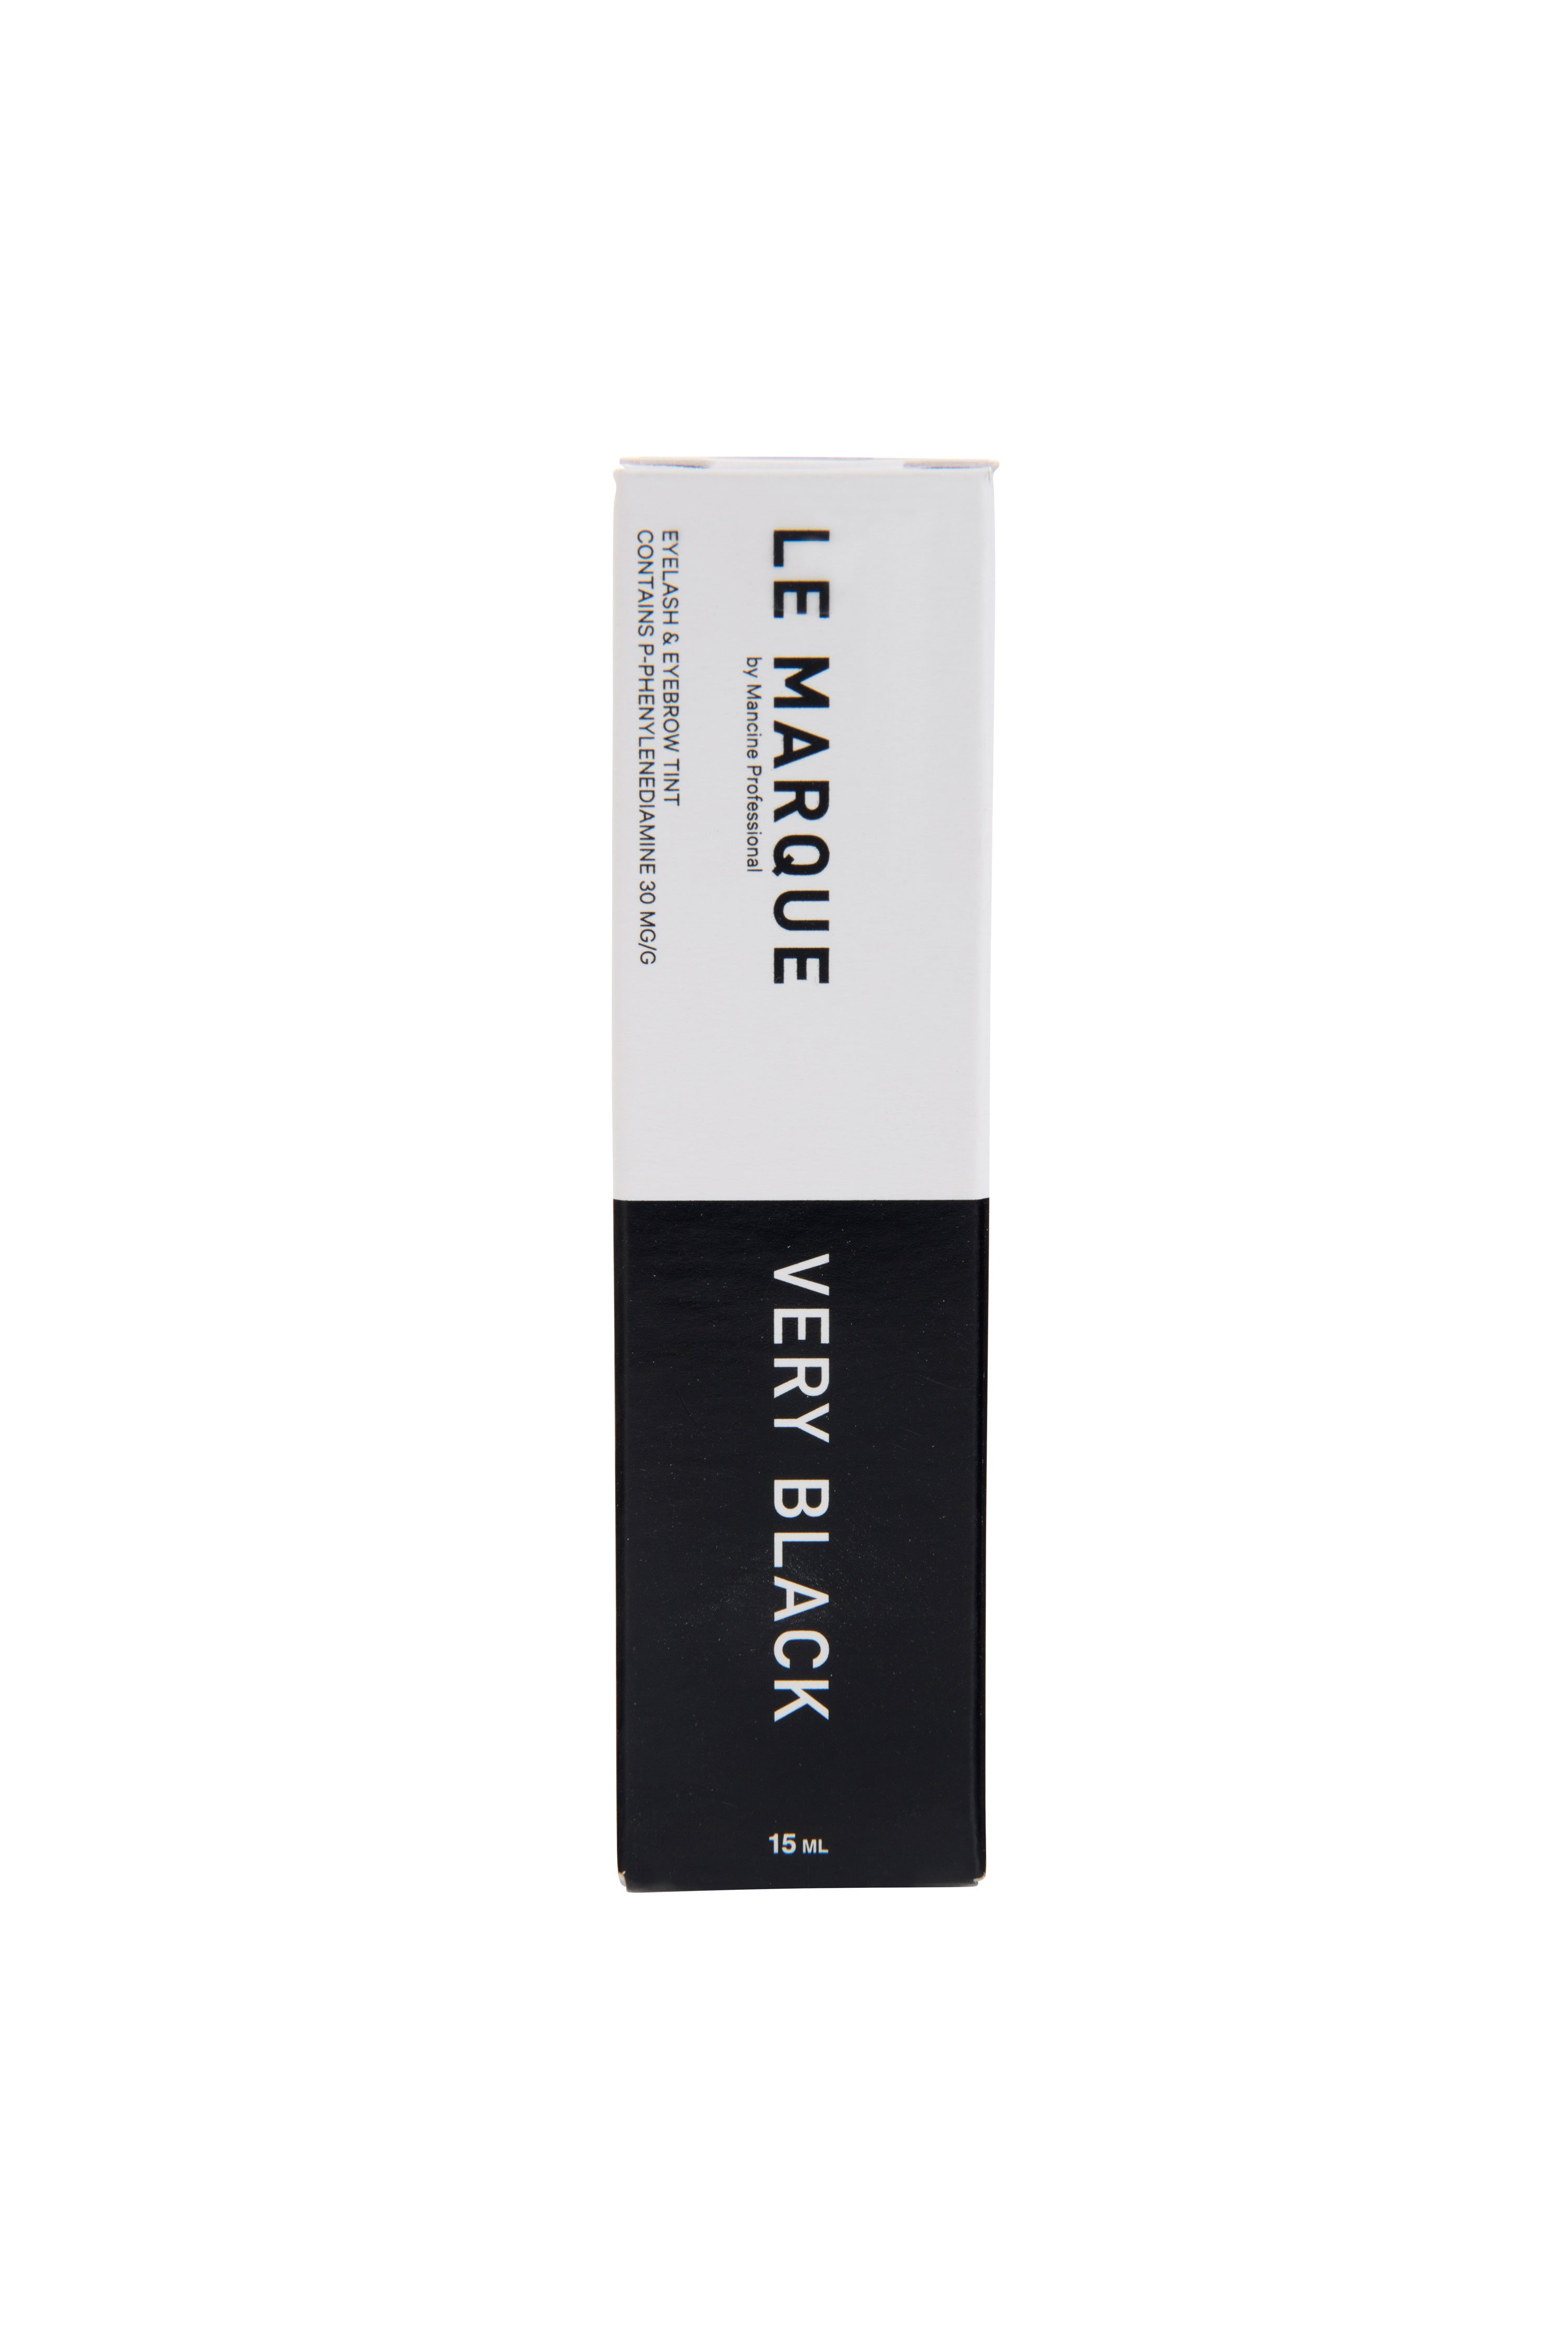 Le Marque Tint Very Black 15gm